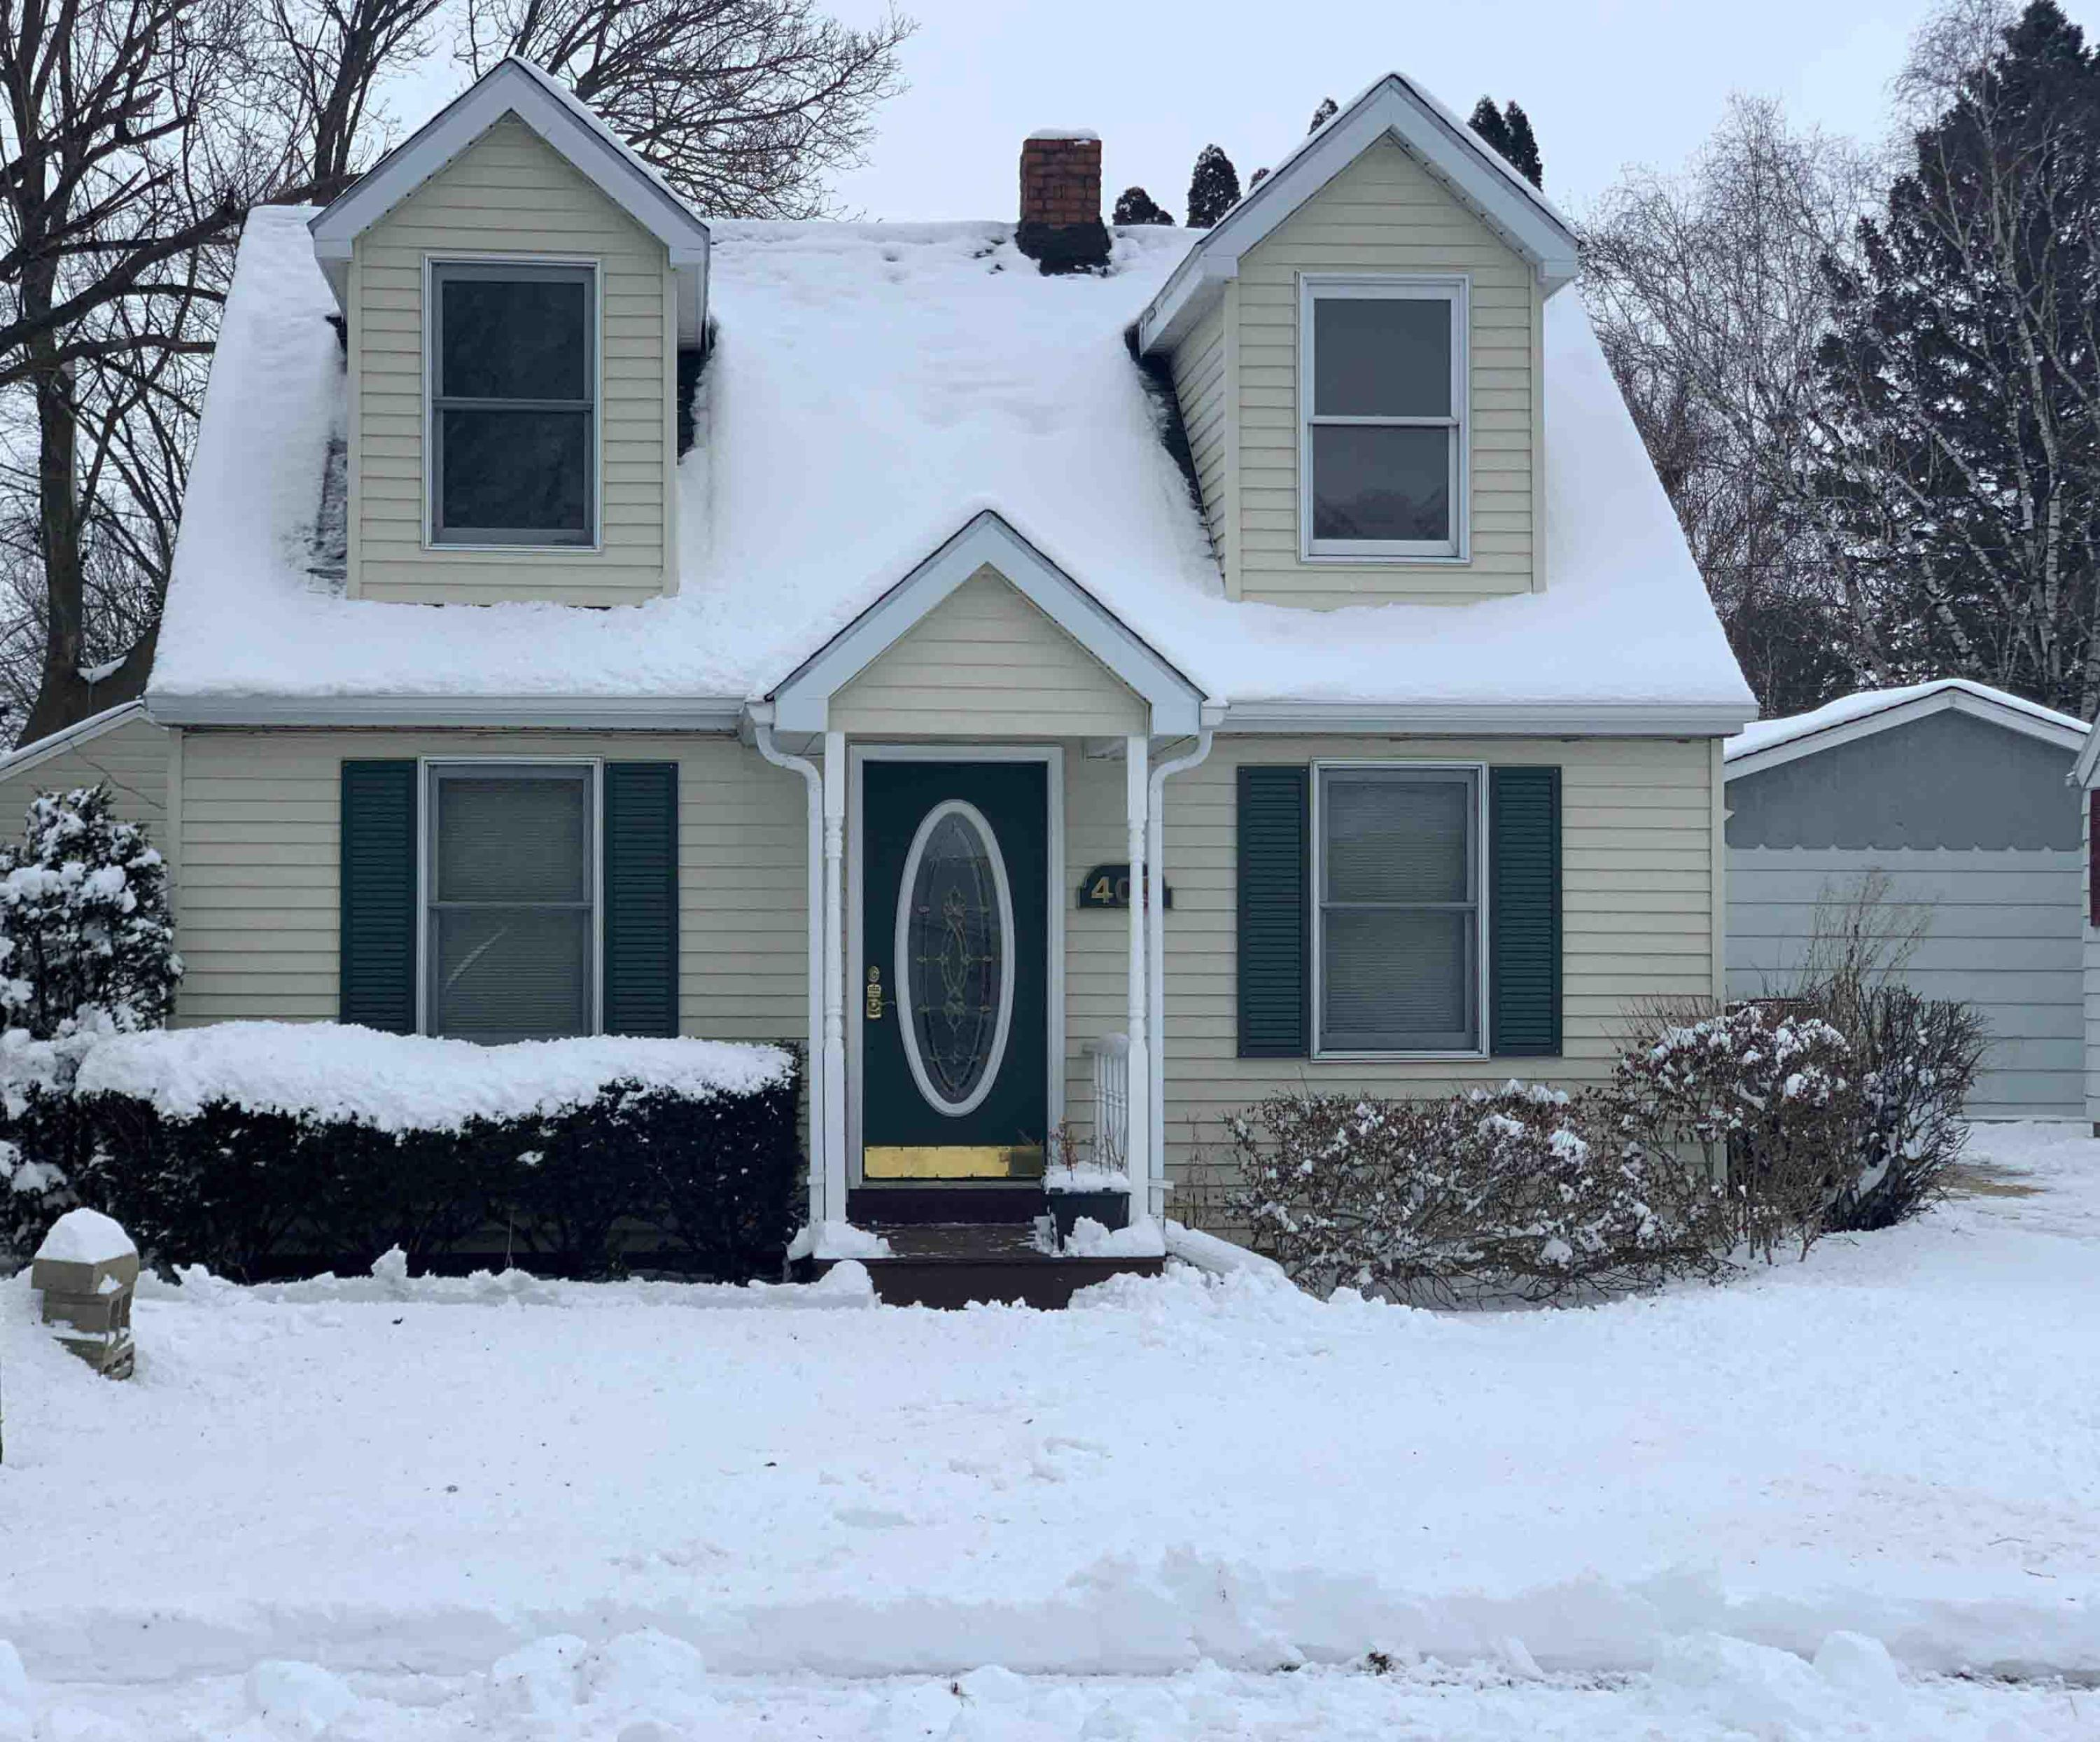 405 1st St, Walworth, Wisconsin 53184, 2 Bedrooms Bedrooms, 5 Rooms Rooms,1 BathroomBathrooms,Single-family,For Sale,1st St,1722991